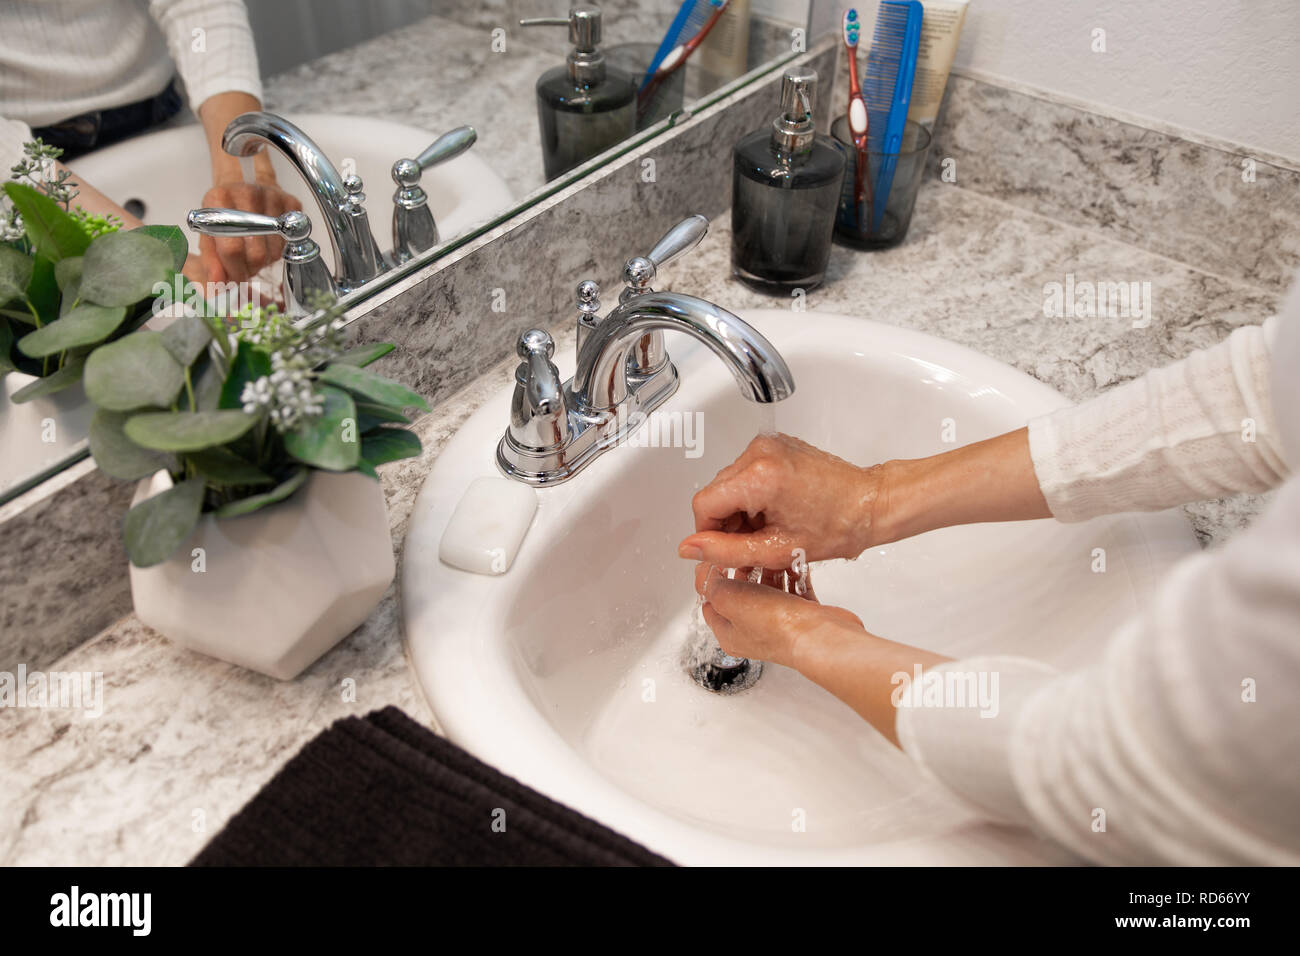 Young Caucasian Female Hands Lathering White Bar Hand Soap for Washing and Personal Hygiene, and Then Rinsing Hand Under Sink Water at Clean Bathroom - Stock Image